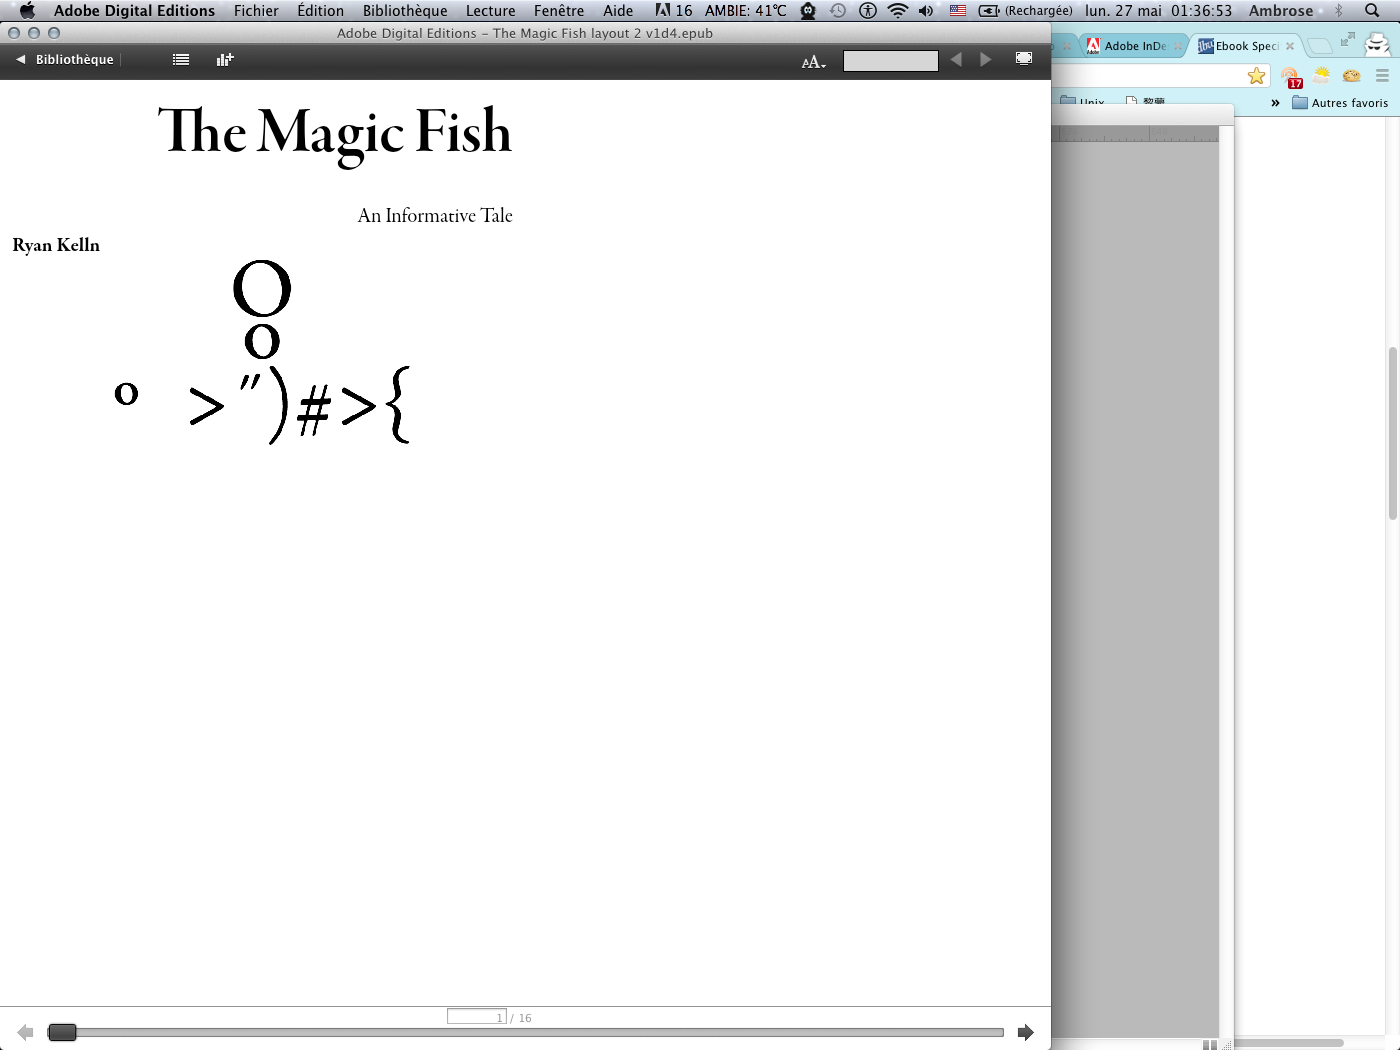 [Screen capture of Adobe Digital Editions, showing how the fish logo has been misrasterized]